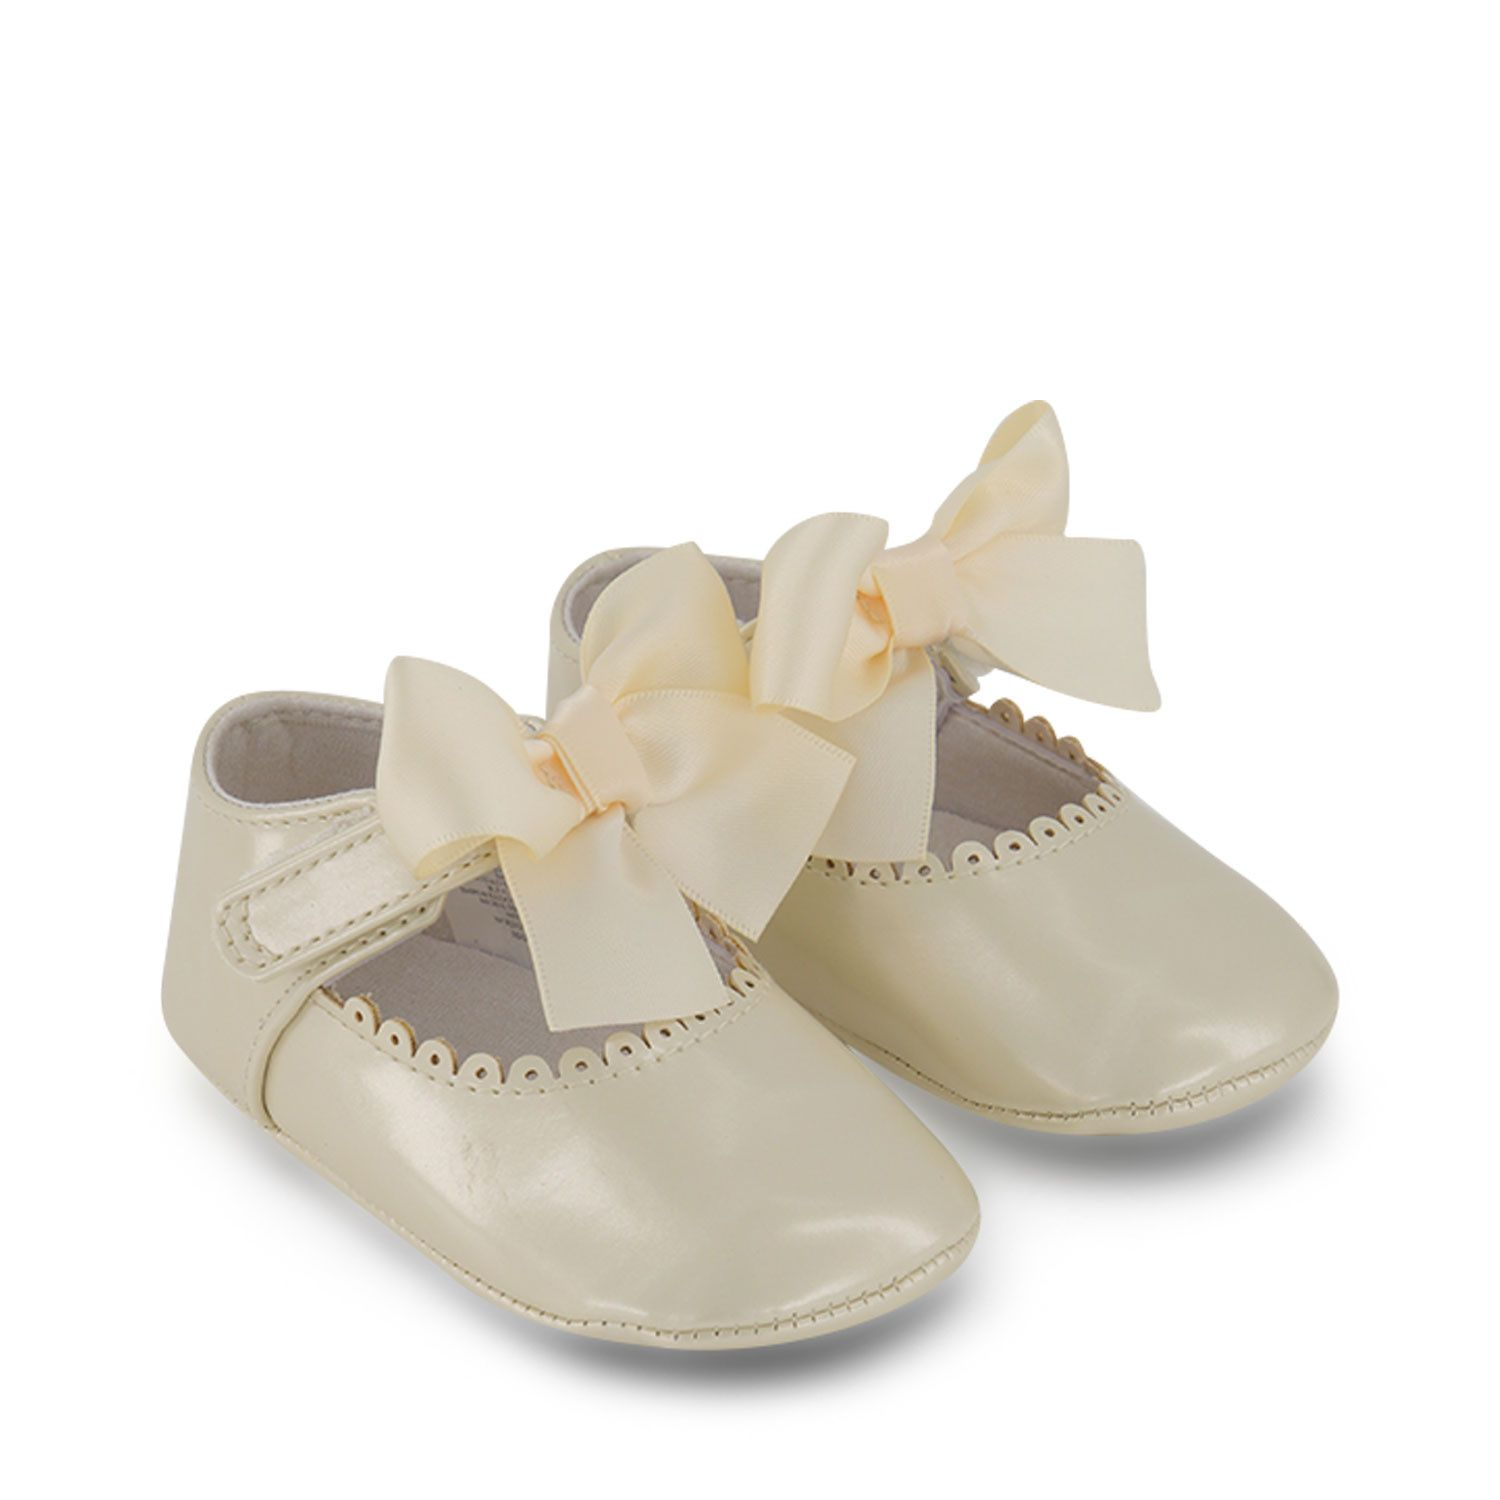 Picture of Mayoral 9455 baby shoes off white